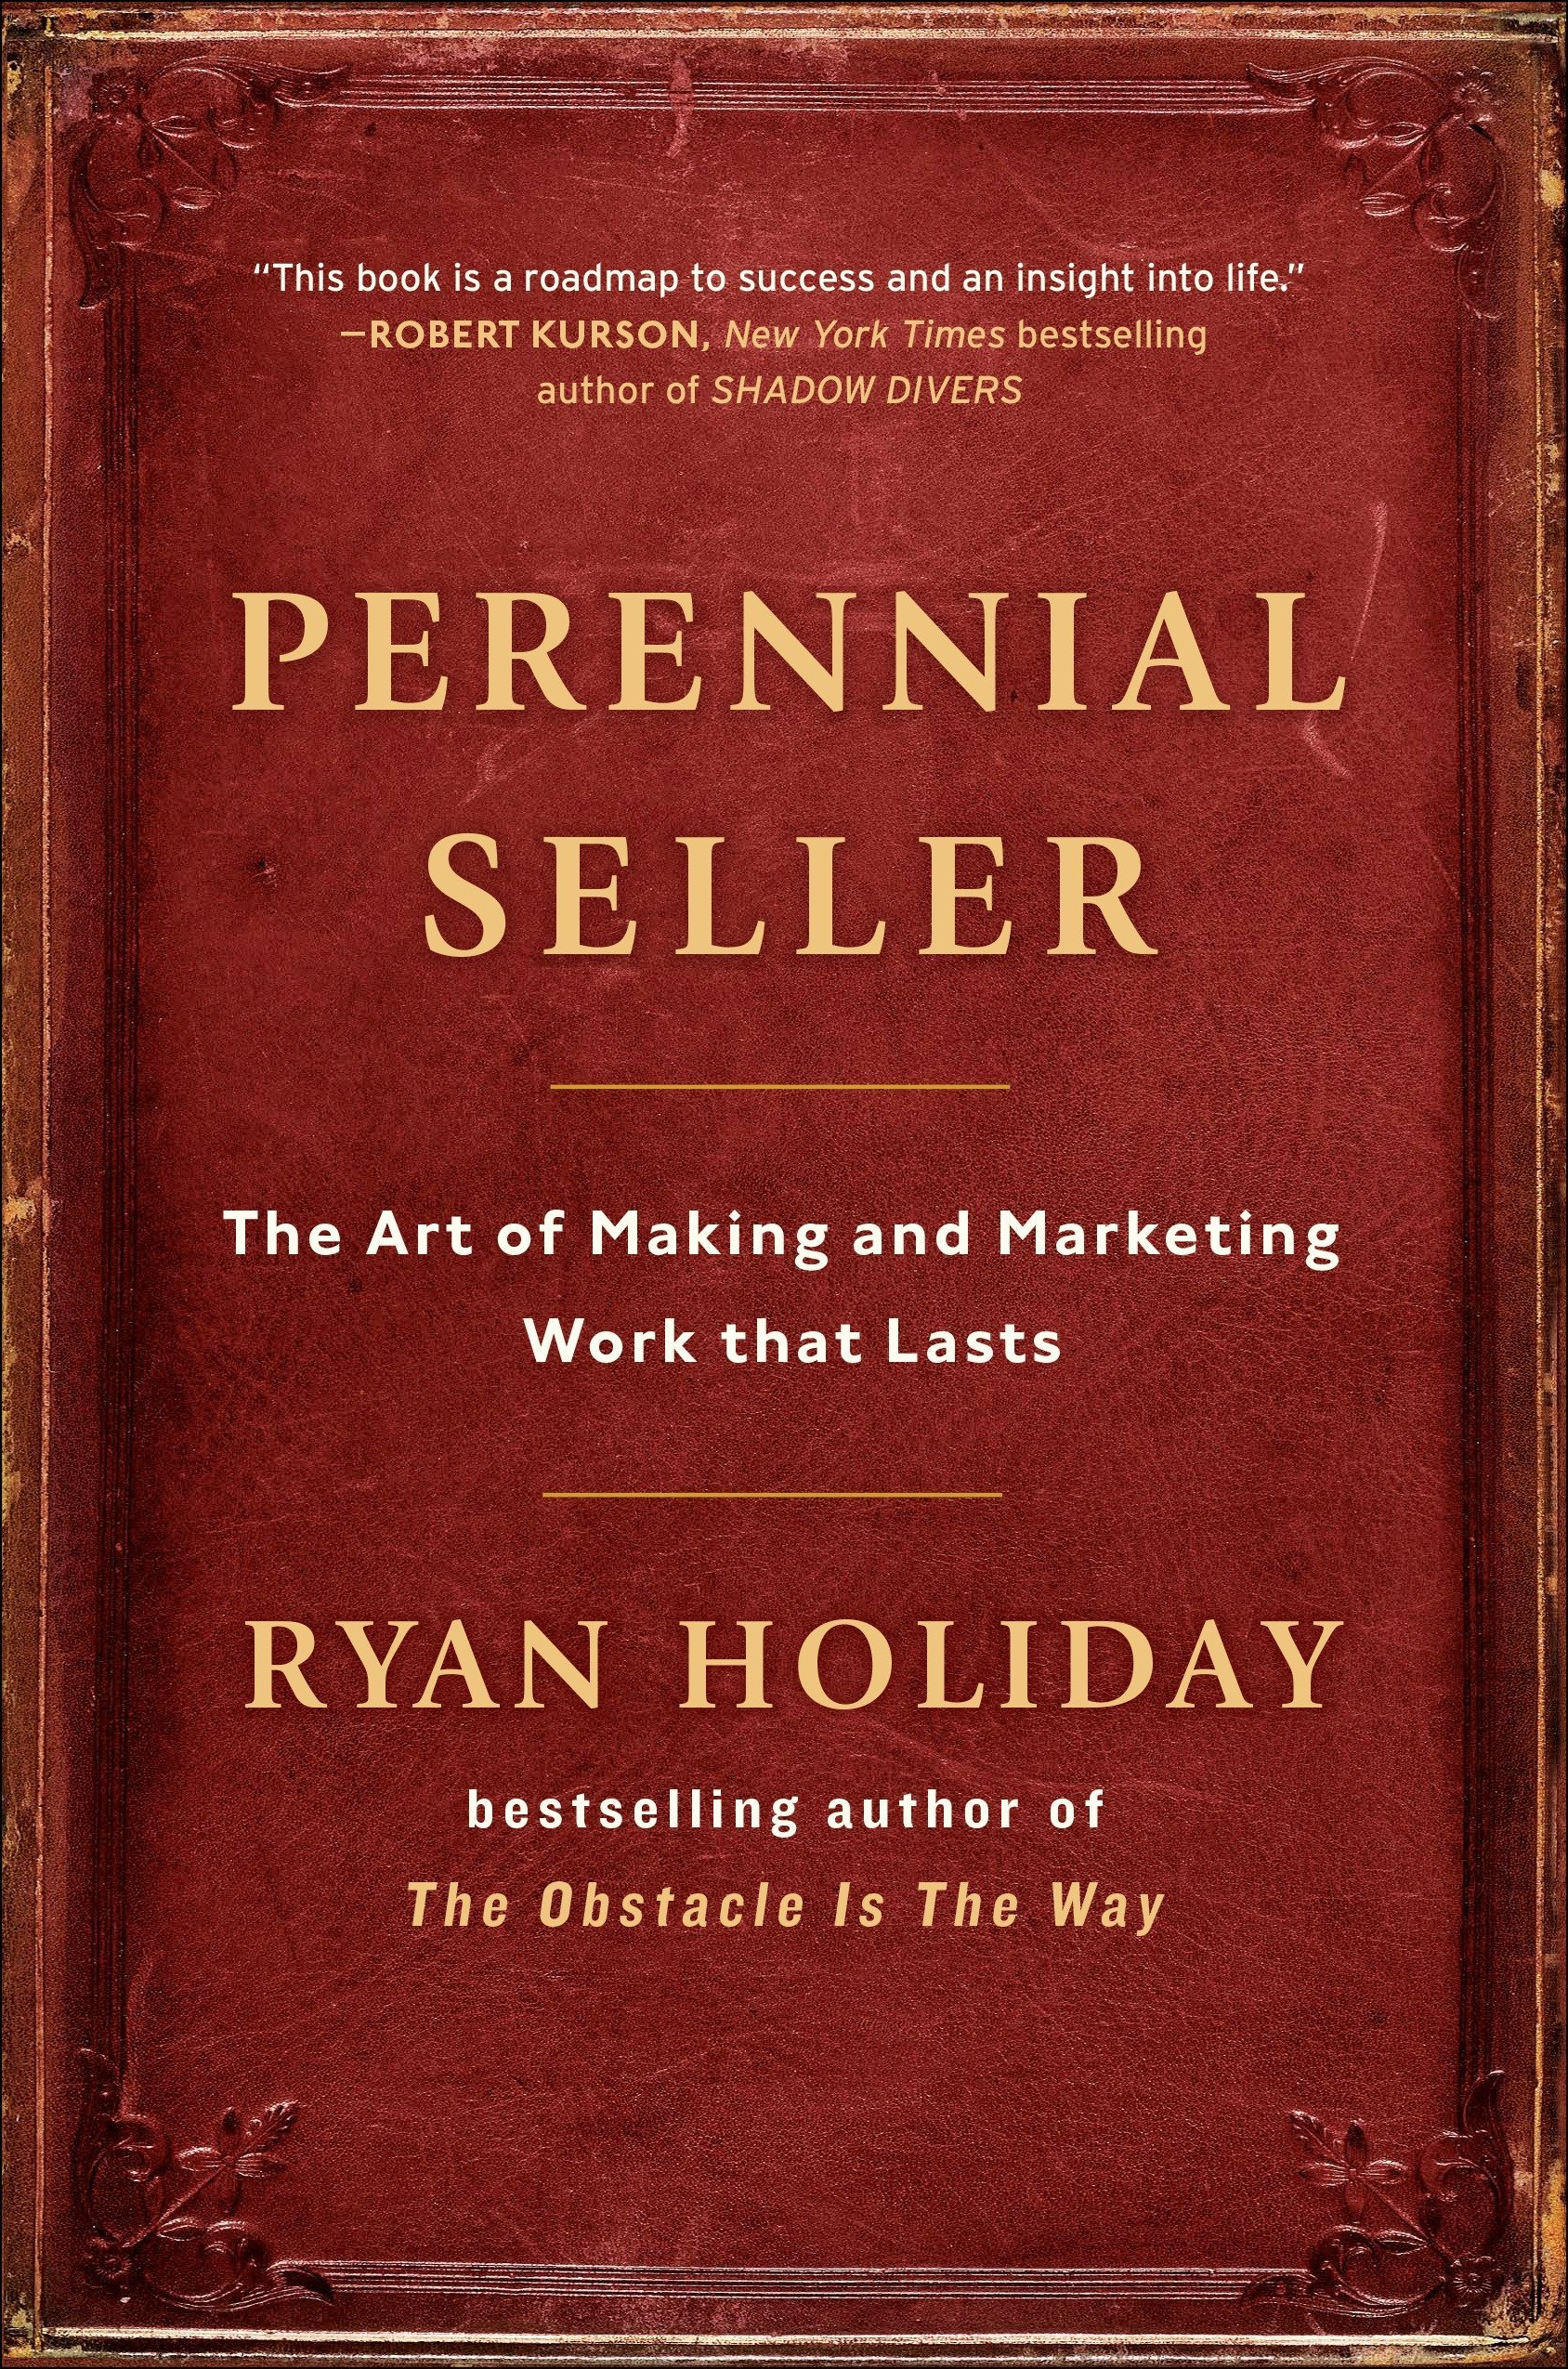 Perennial Seller (Ryan Holiday)